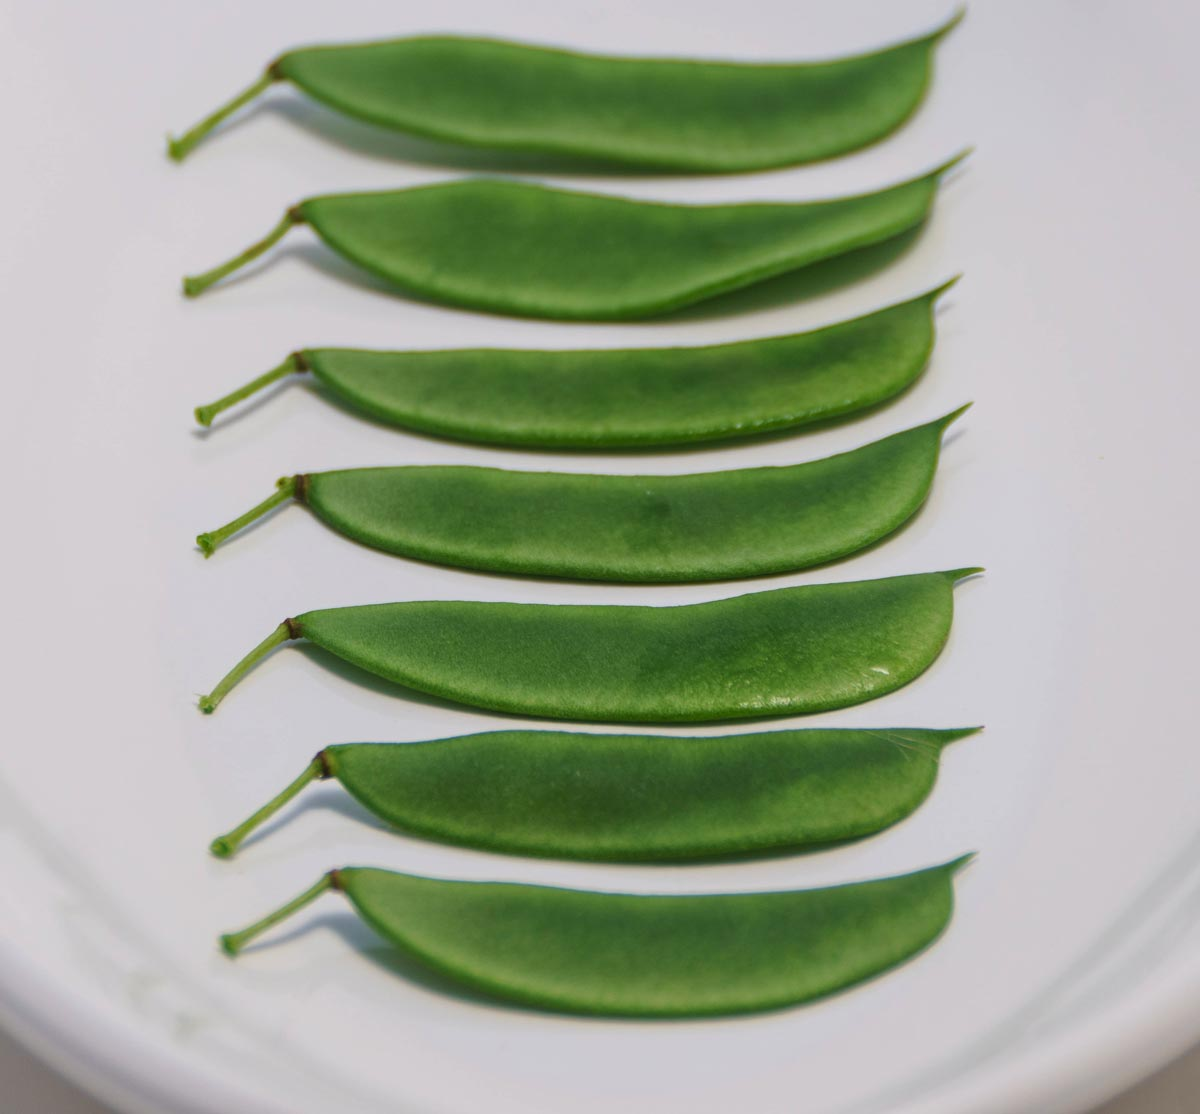 Henderson lima beans, harvested and arranged in a row